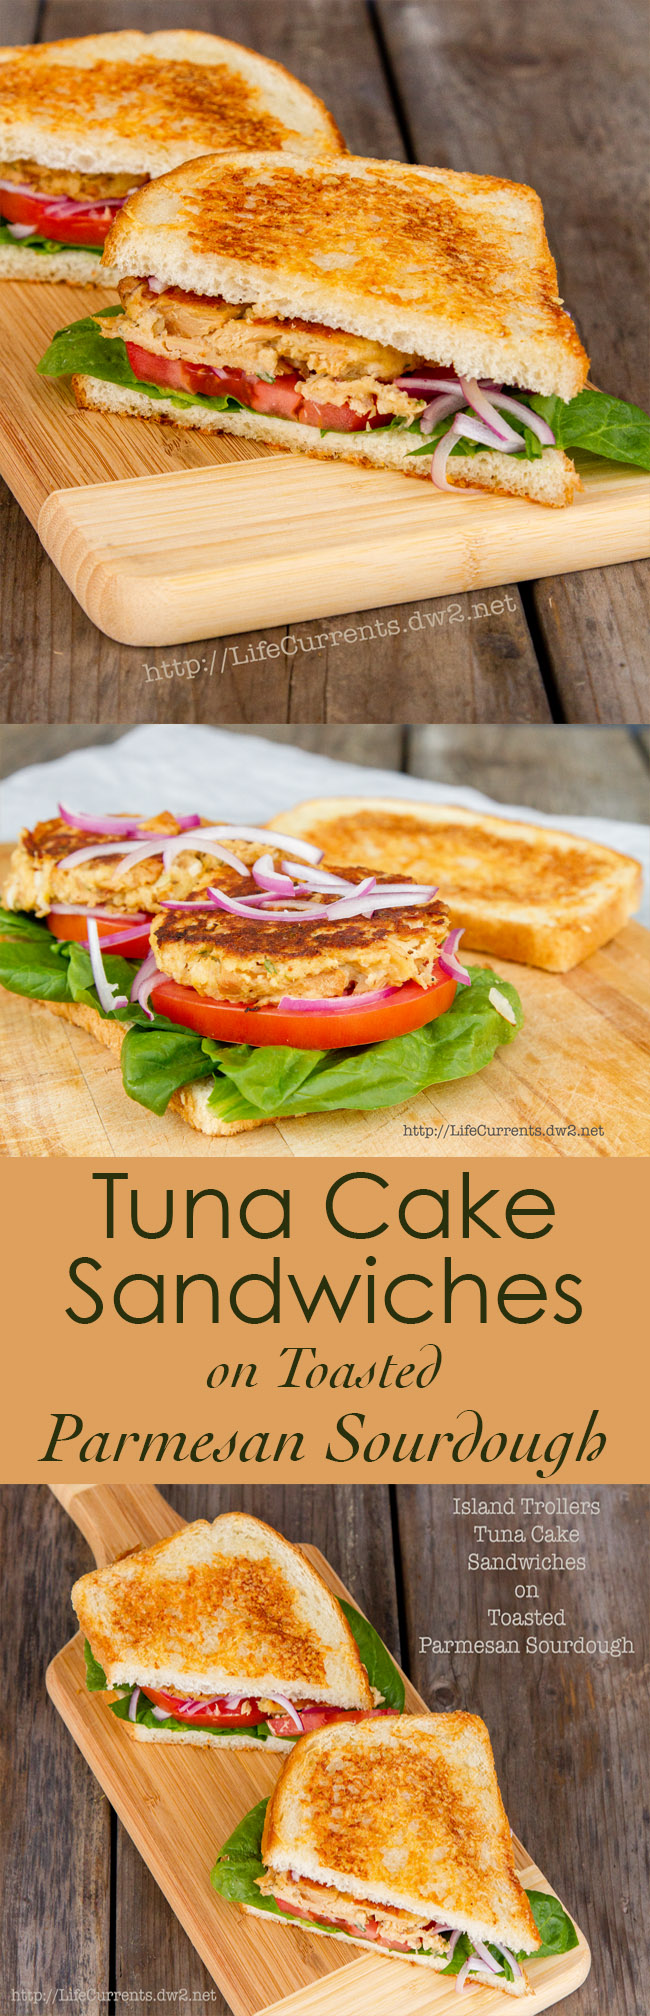 Island Trollers Tuna Cake Sandwiches on Toasted Parmesan Sourdough Recipe